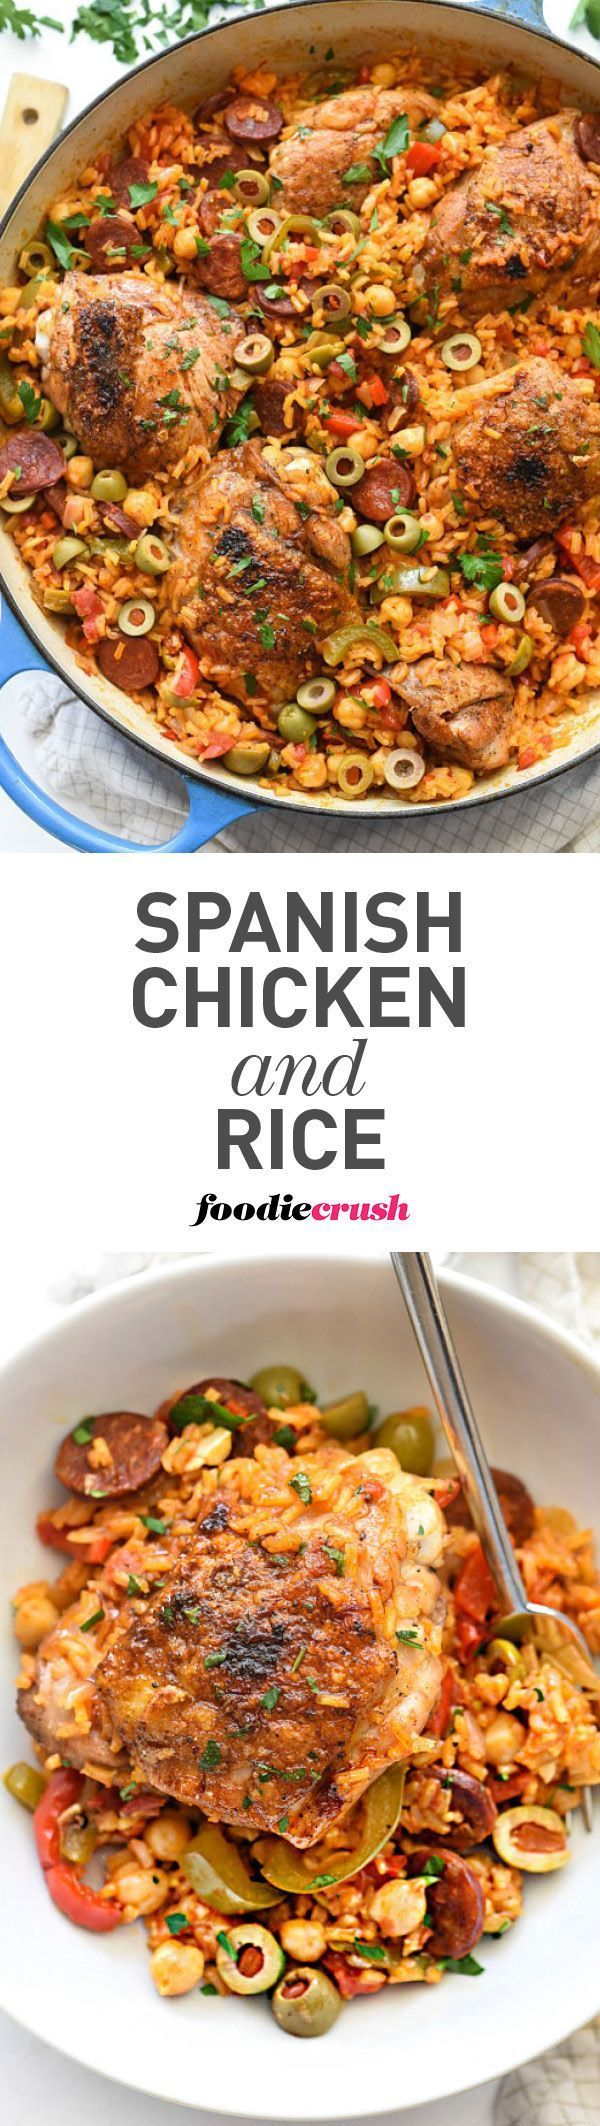 Chicken thighs are nestled in Spanish-flavored rice with Spanish chorizo, green olives, and garbanzo beans for the ultimate one-pot meal   foodiecrush.com